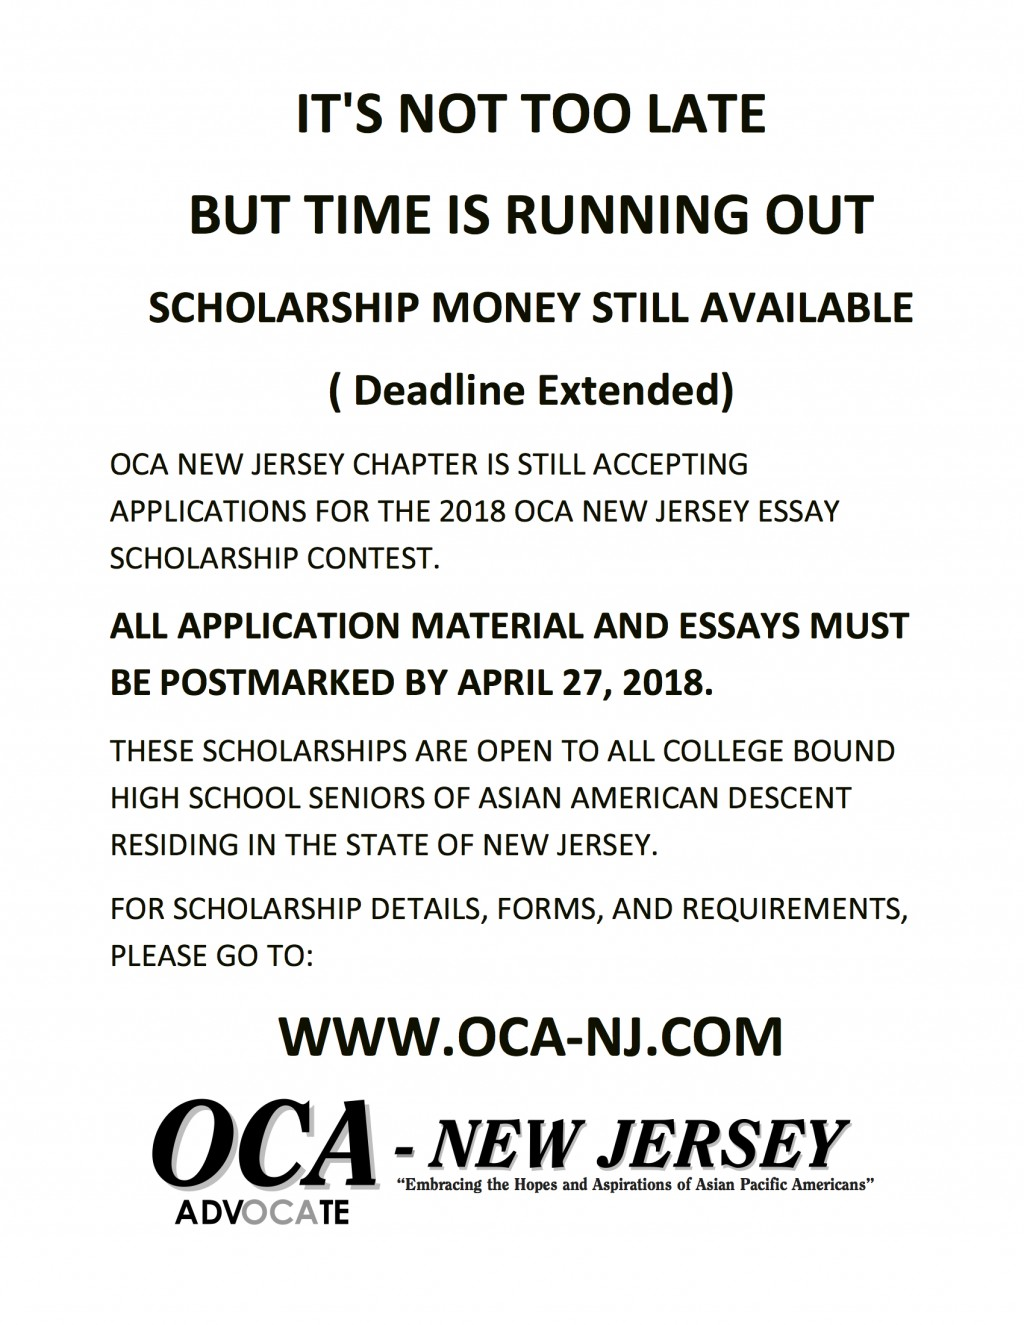 014 Essay Example Scholarships Entended Deadline Oca Nj Shocking For High School Sophomores No 2018 Large